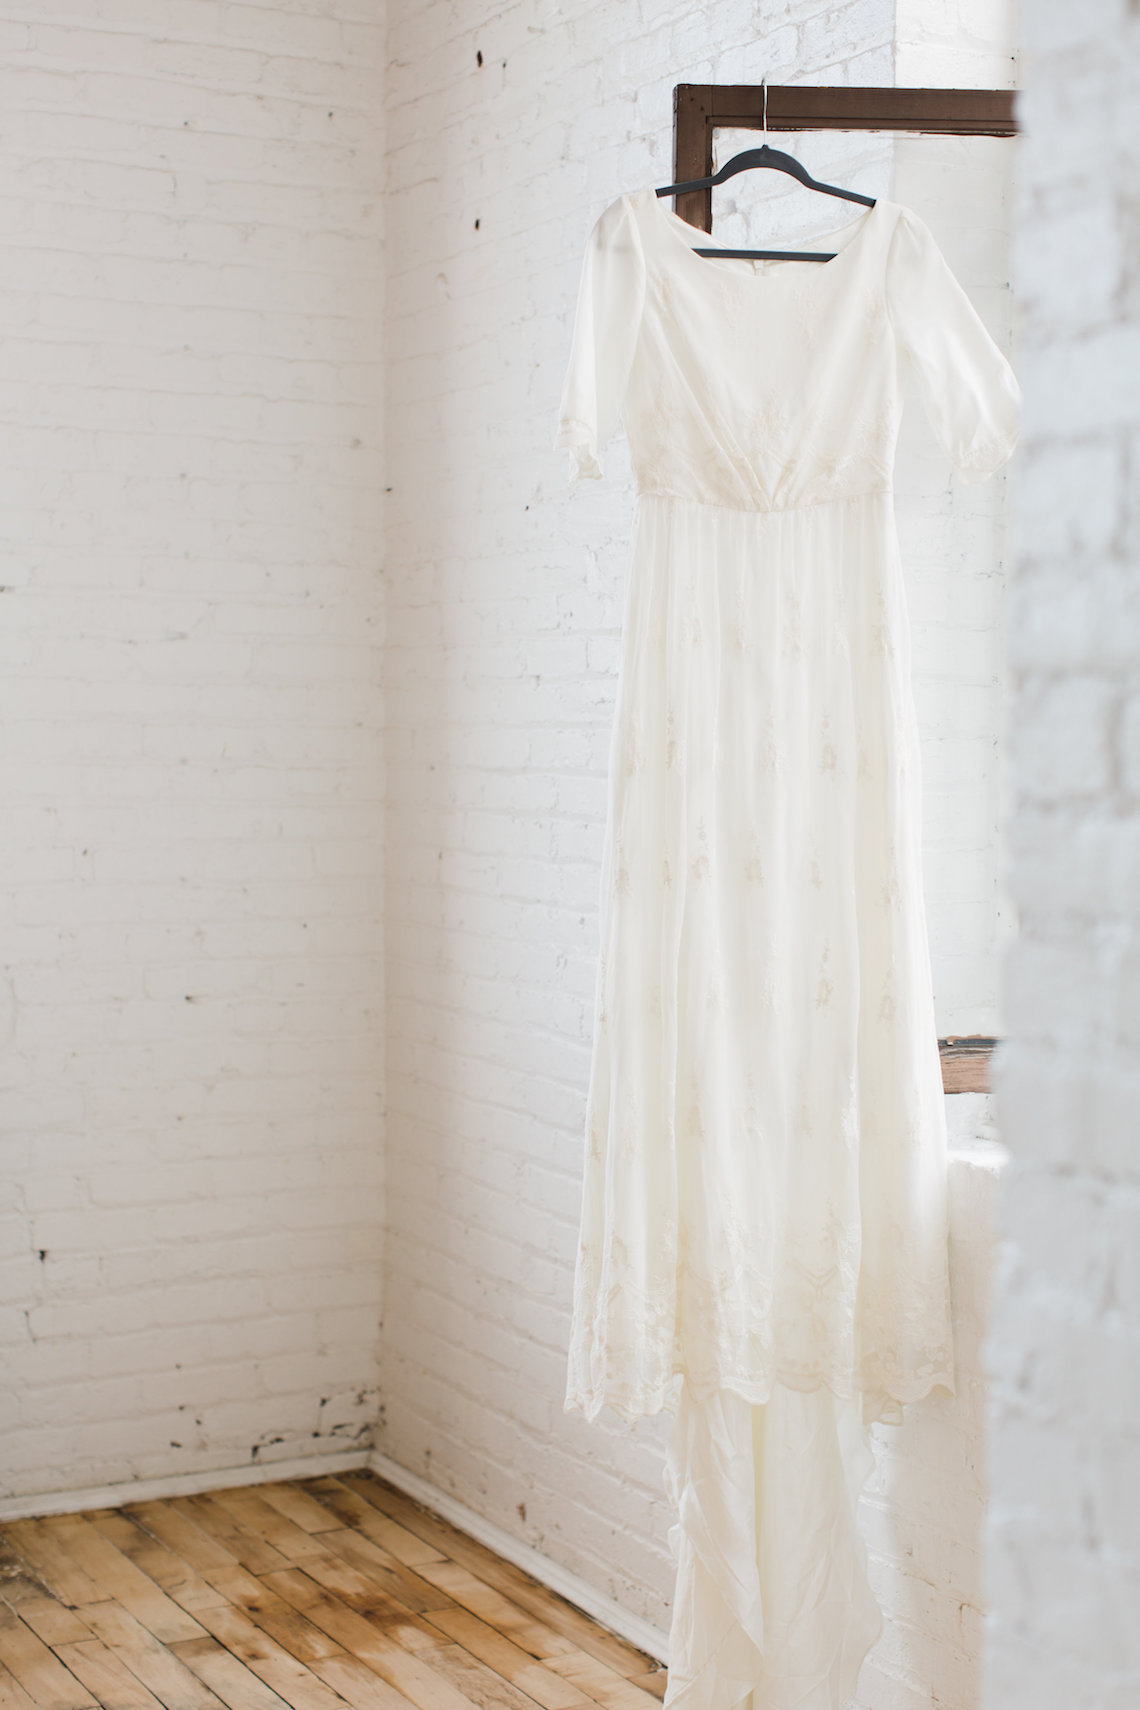 Light & Modern Wedding Inspiration With Cool Modest Gowns | Sons and Daughters Photography 48